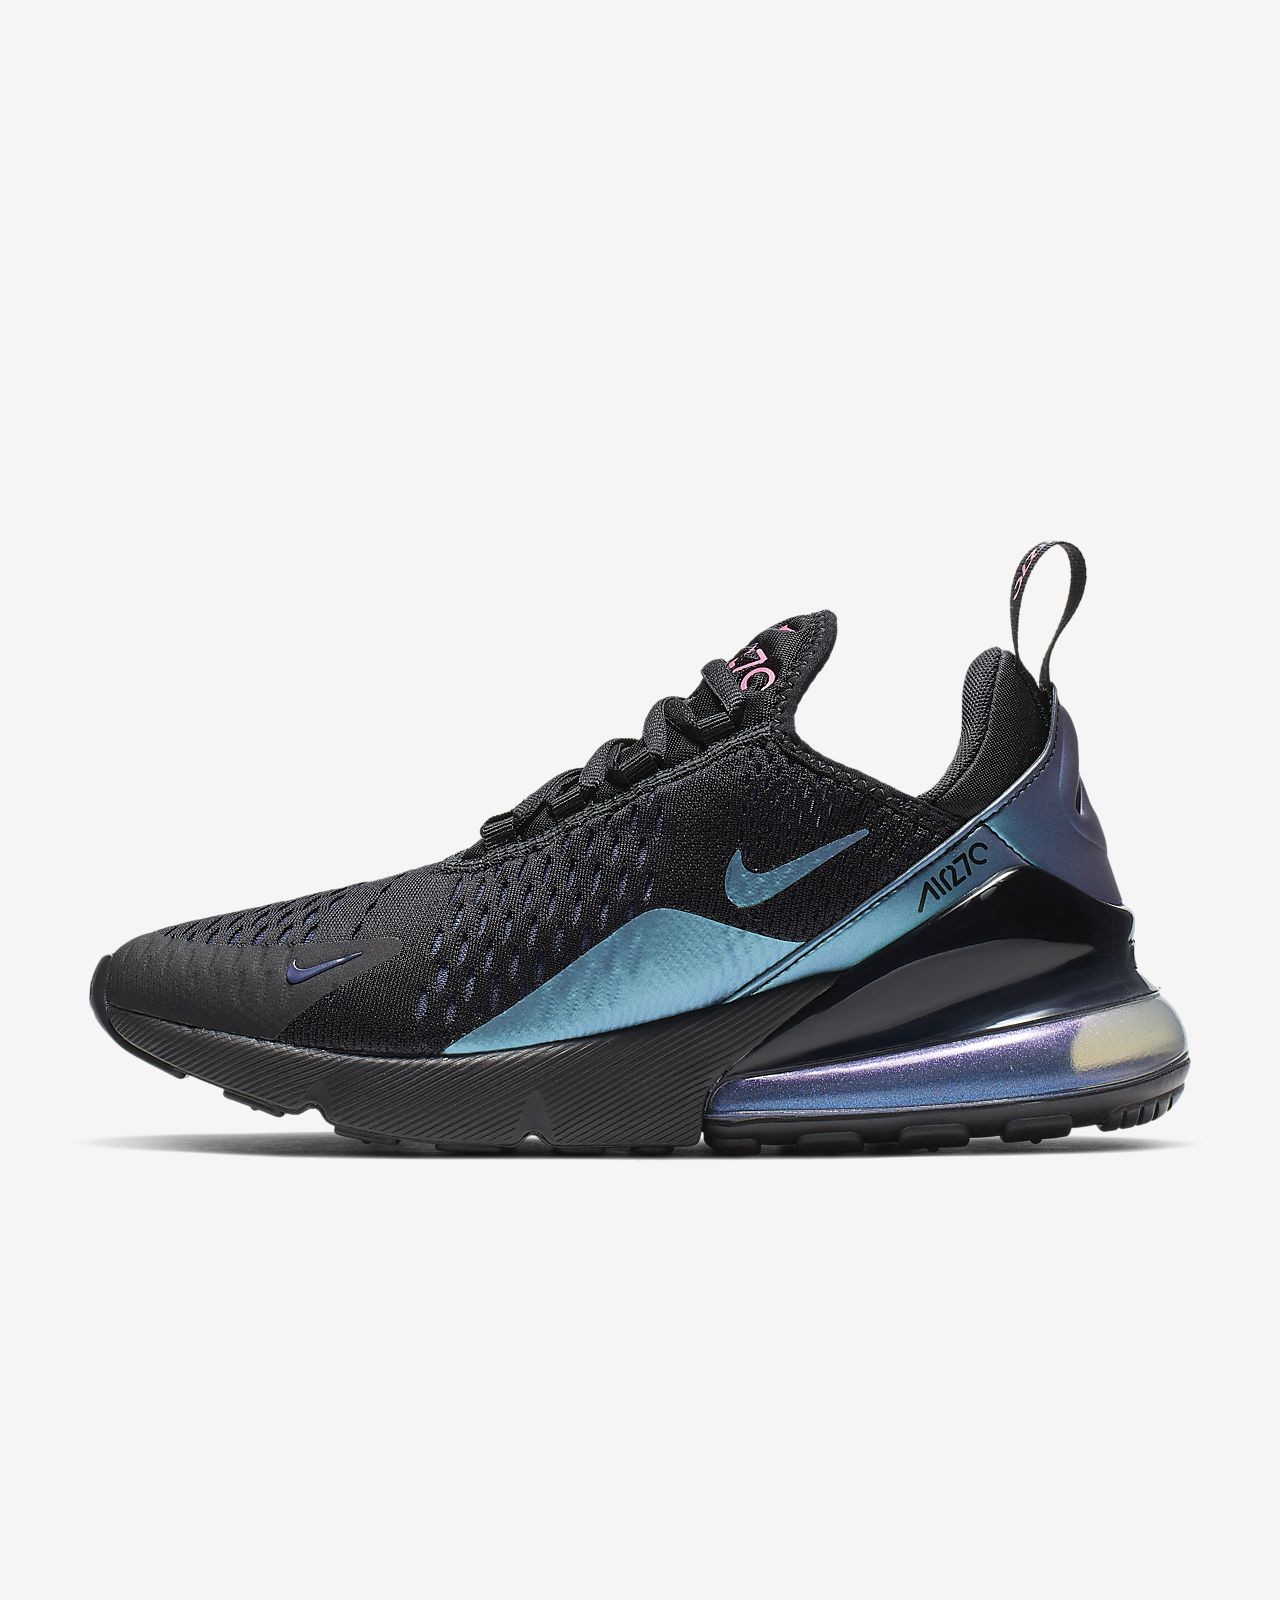 official photos e51c4 e4210 ... Nike Air Max 270 Zapatillas - Mujer